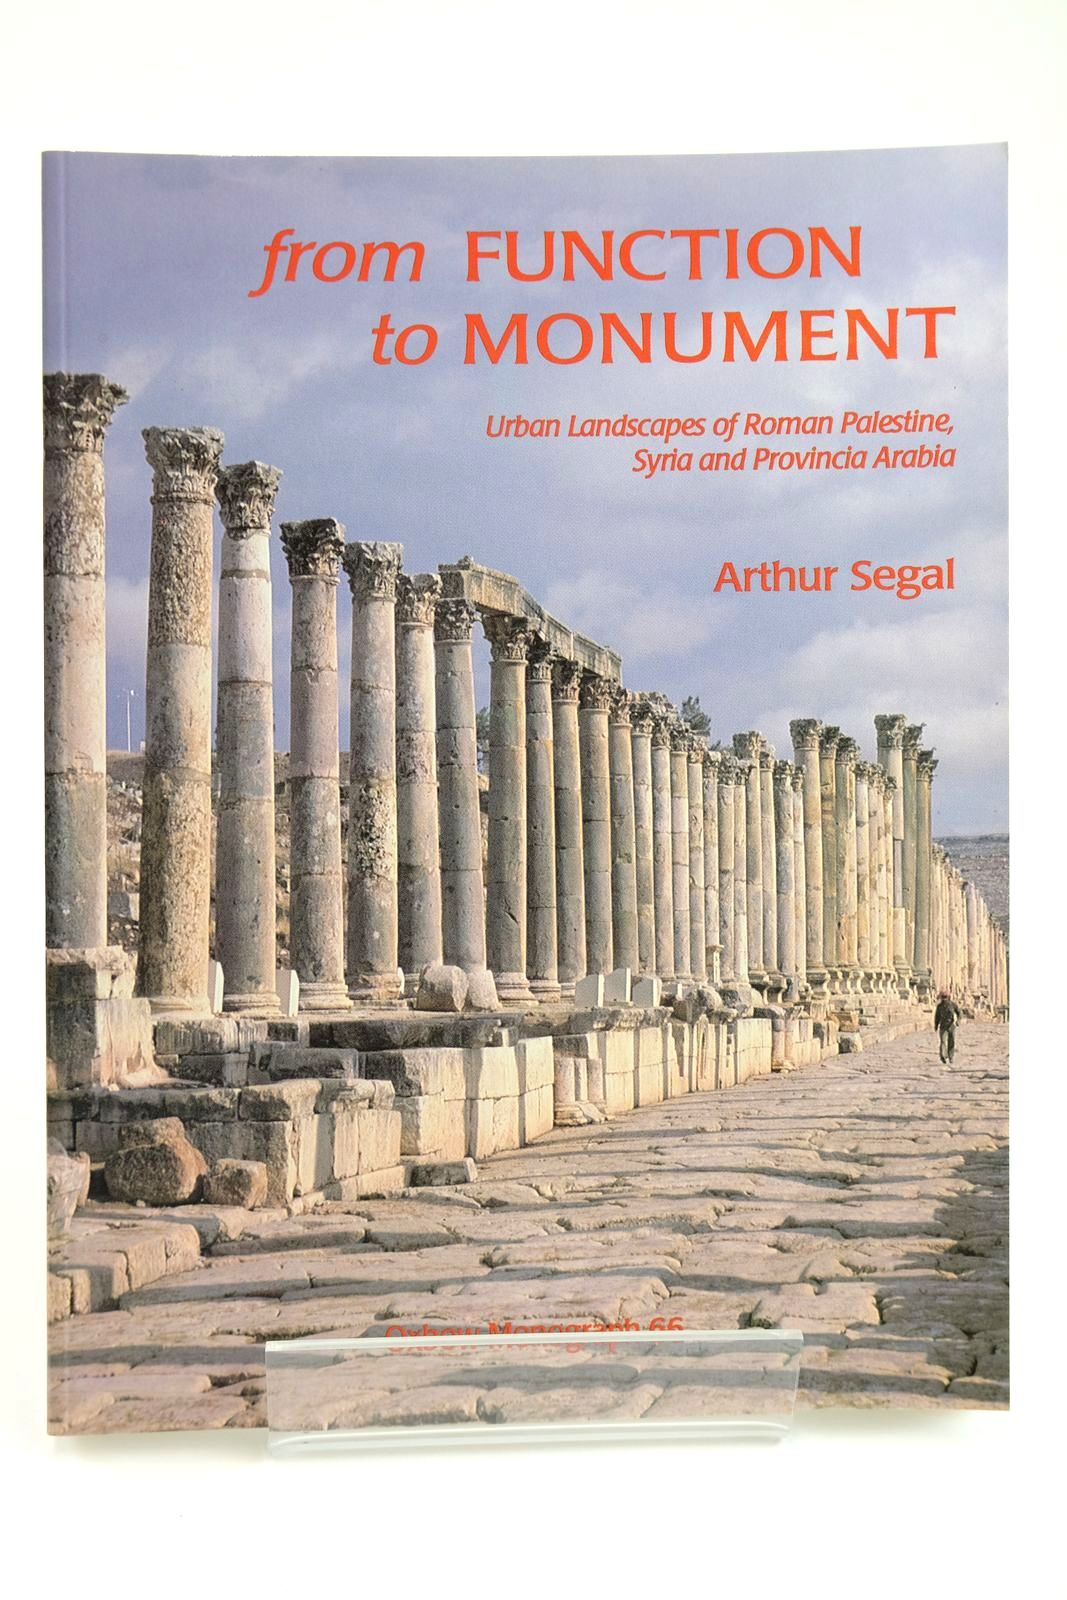 Photo of FROM FUNCTION TO MONUMENT URBAN LANDSCAPES OF ROMAN PALESTINE, SYRIA AND PROVINCIA ARABIA written by Segal, Arthur published by Oxbow Books (STOCK CODE: 2132124)  for sale by Stella & Rose's Books